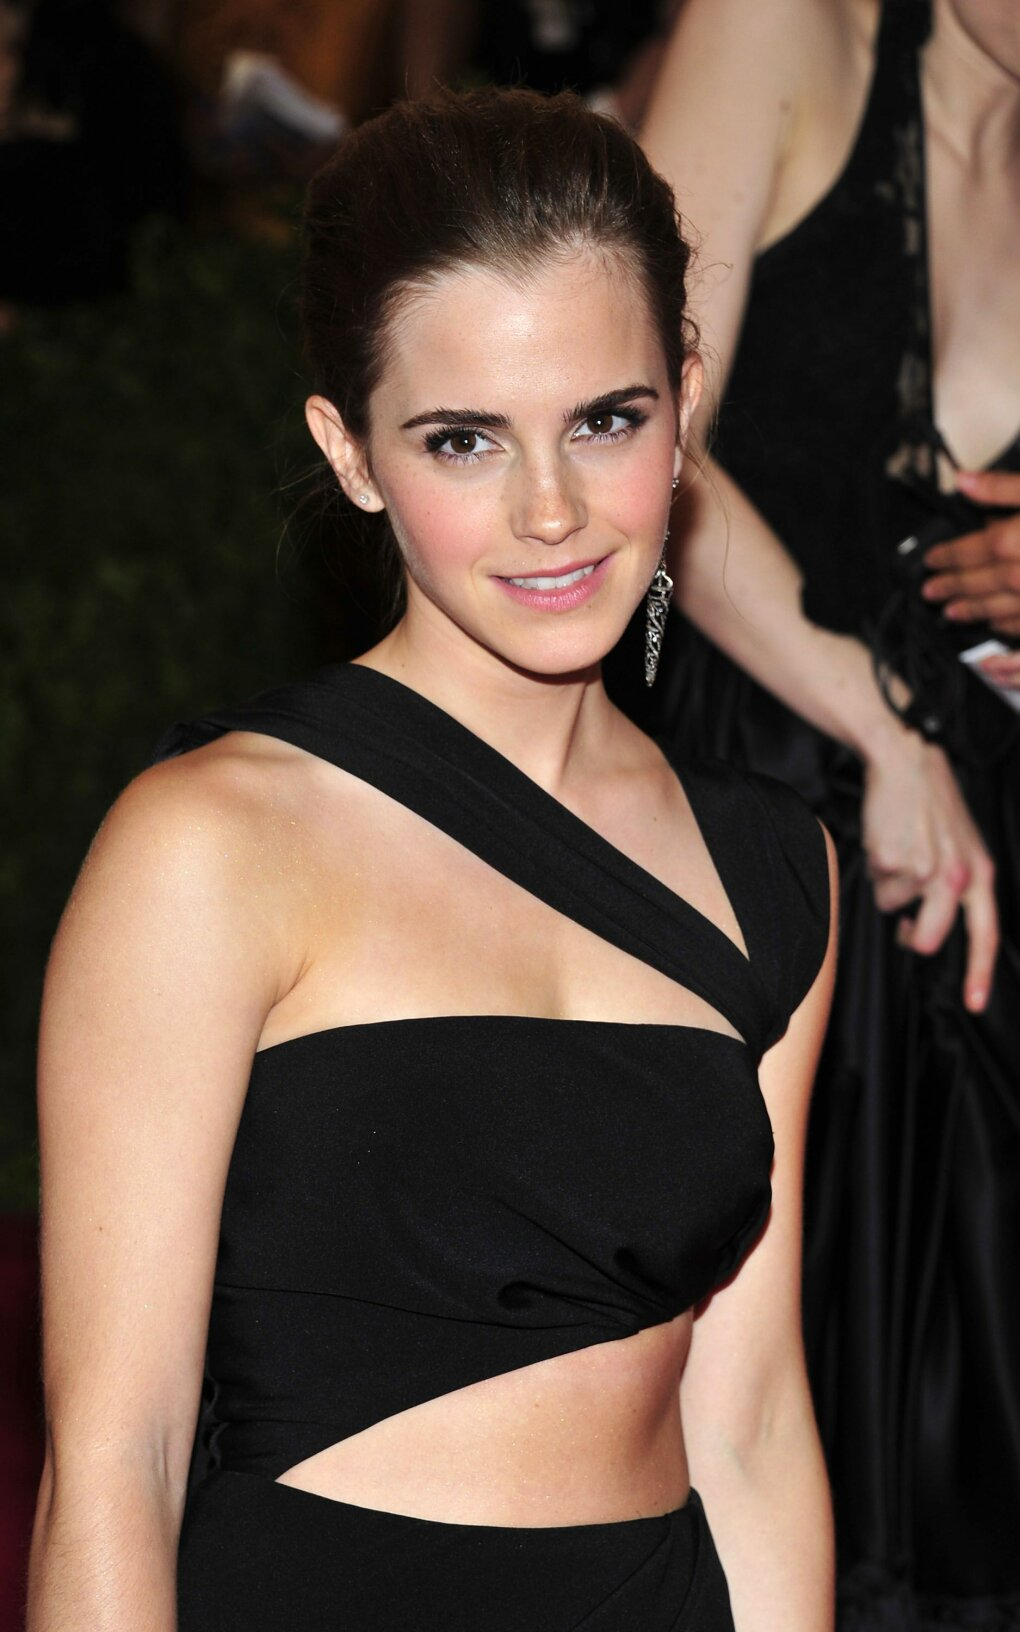 bx1oarv - the sexiest photos of emma watson's body (30+ photos)